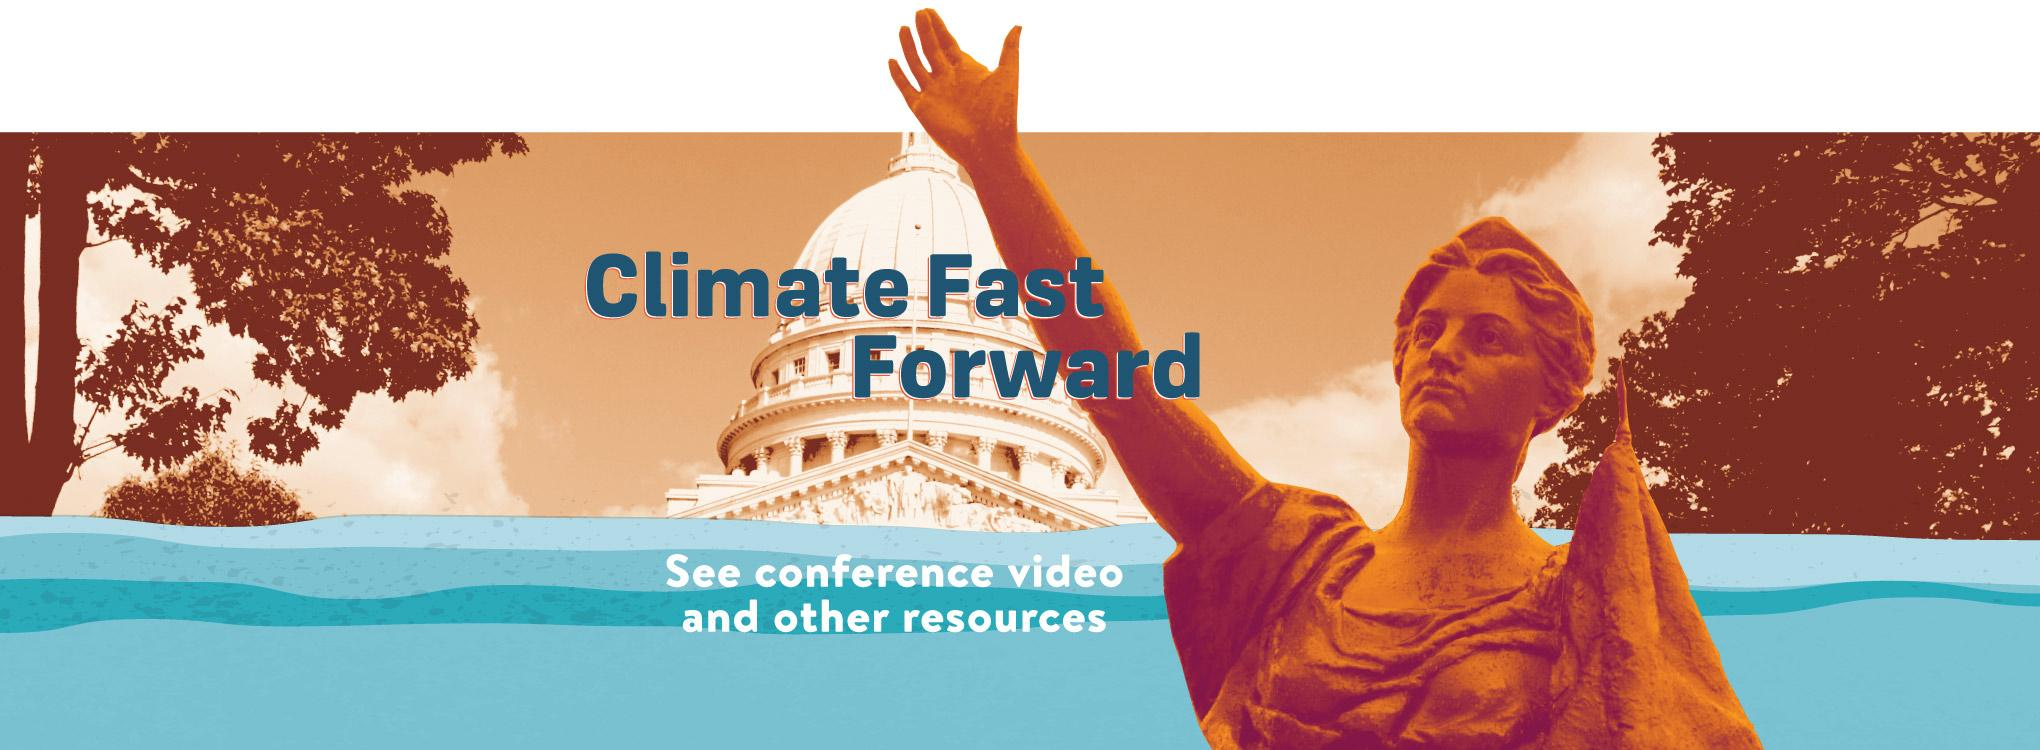 Climate Fast Forward Conference